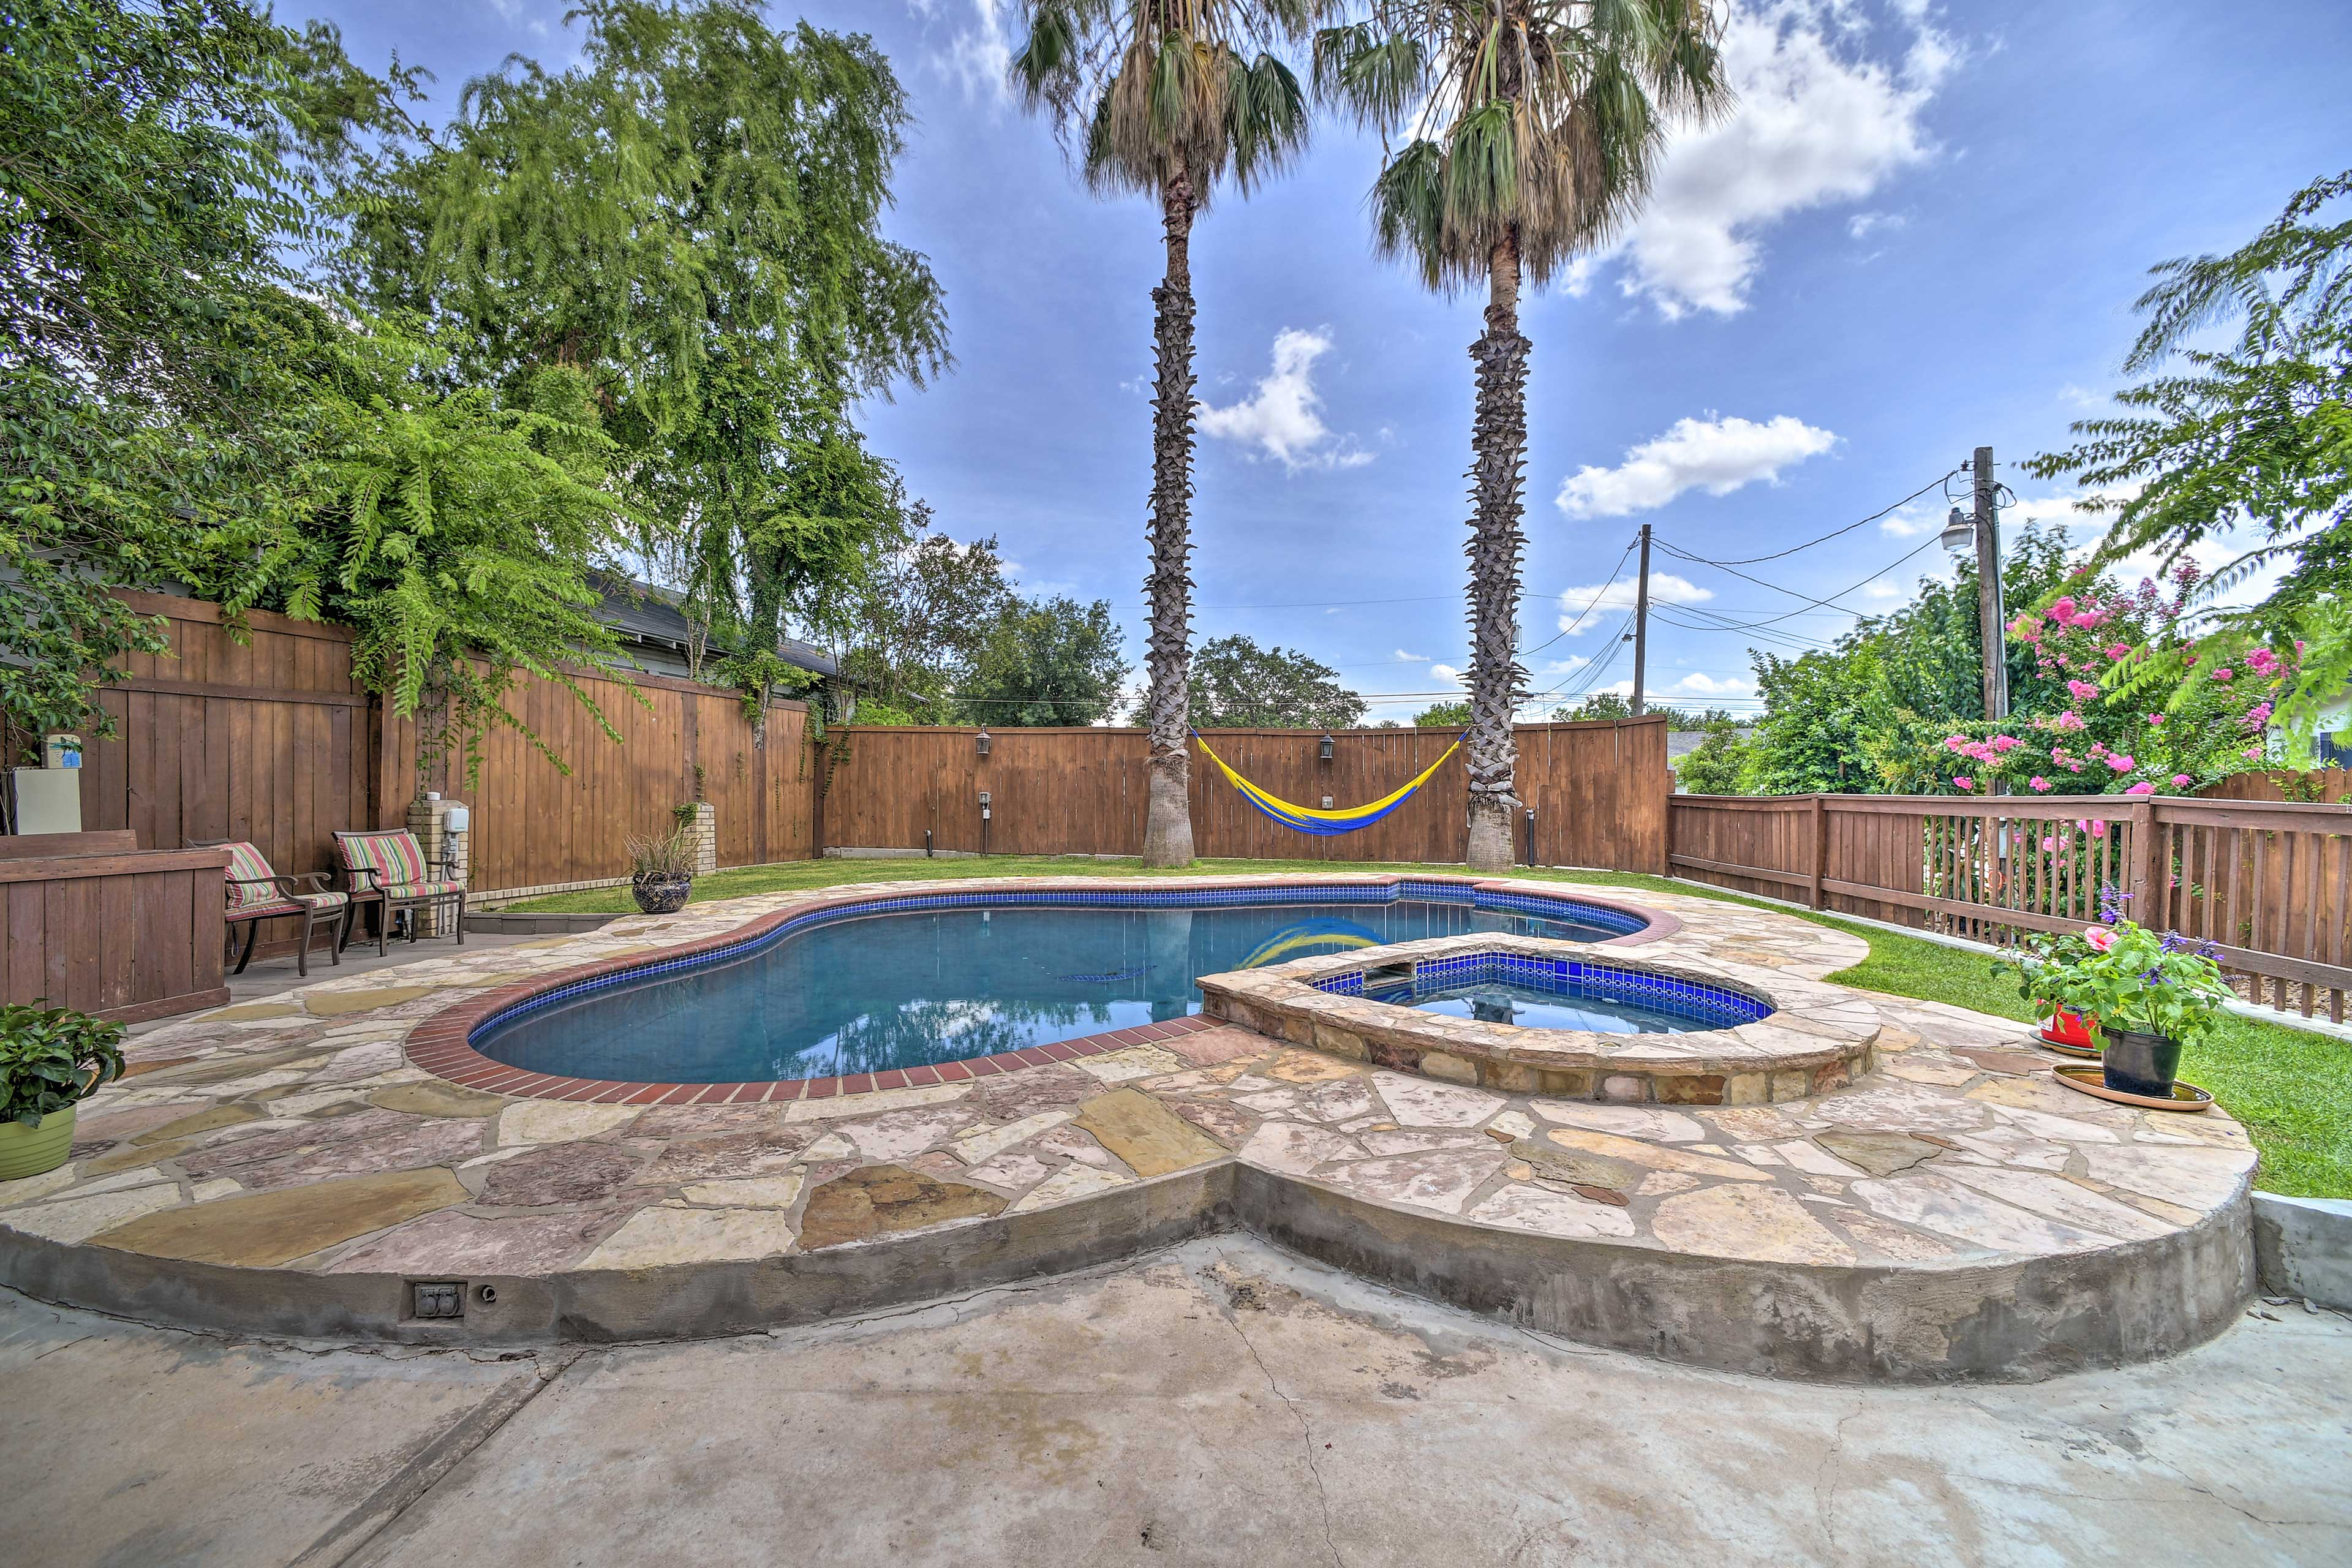 Make a splash in the outdoor pool.